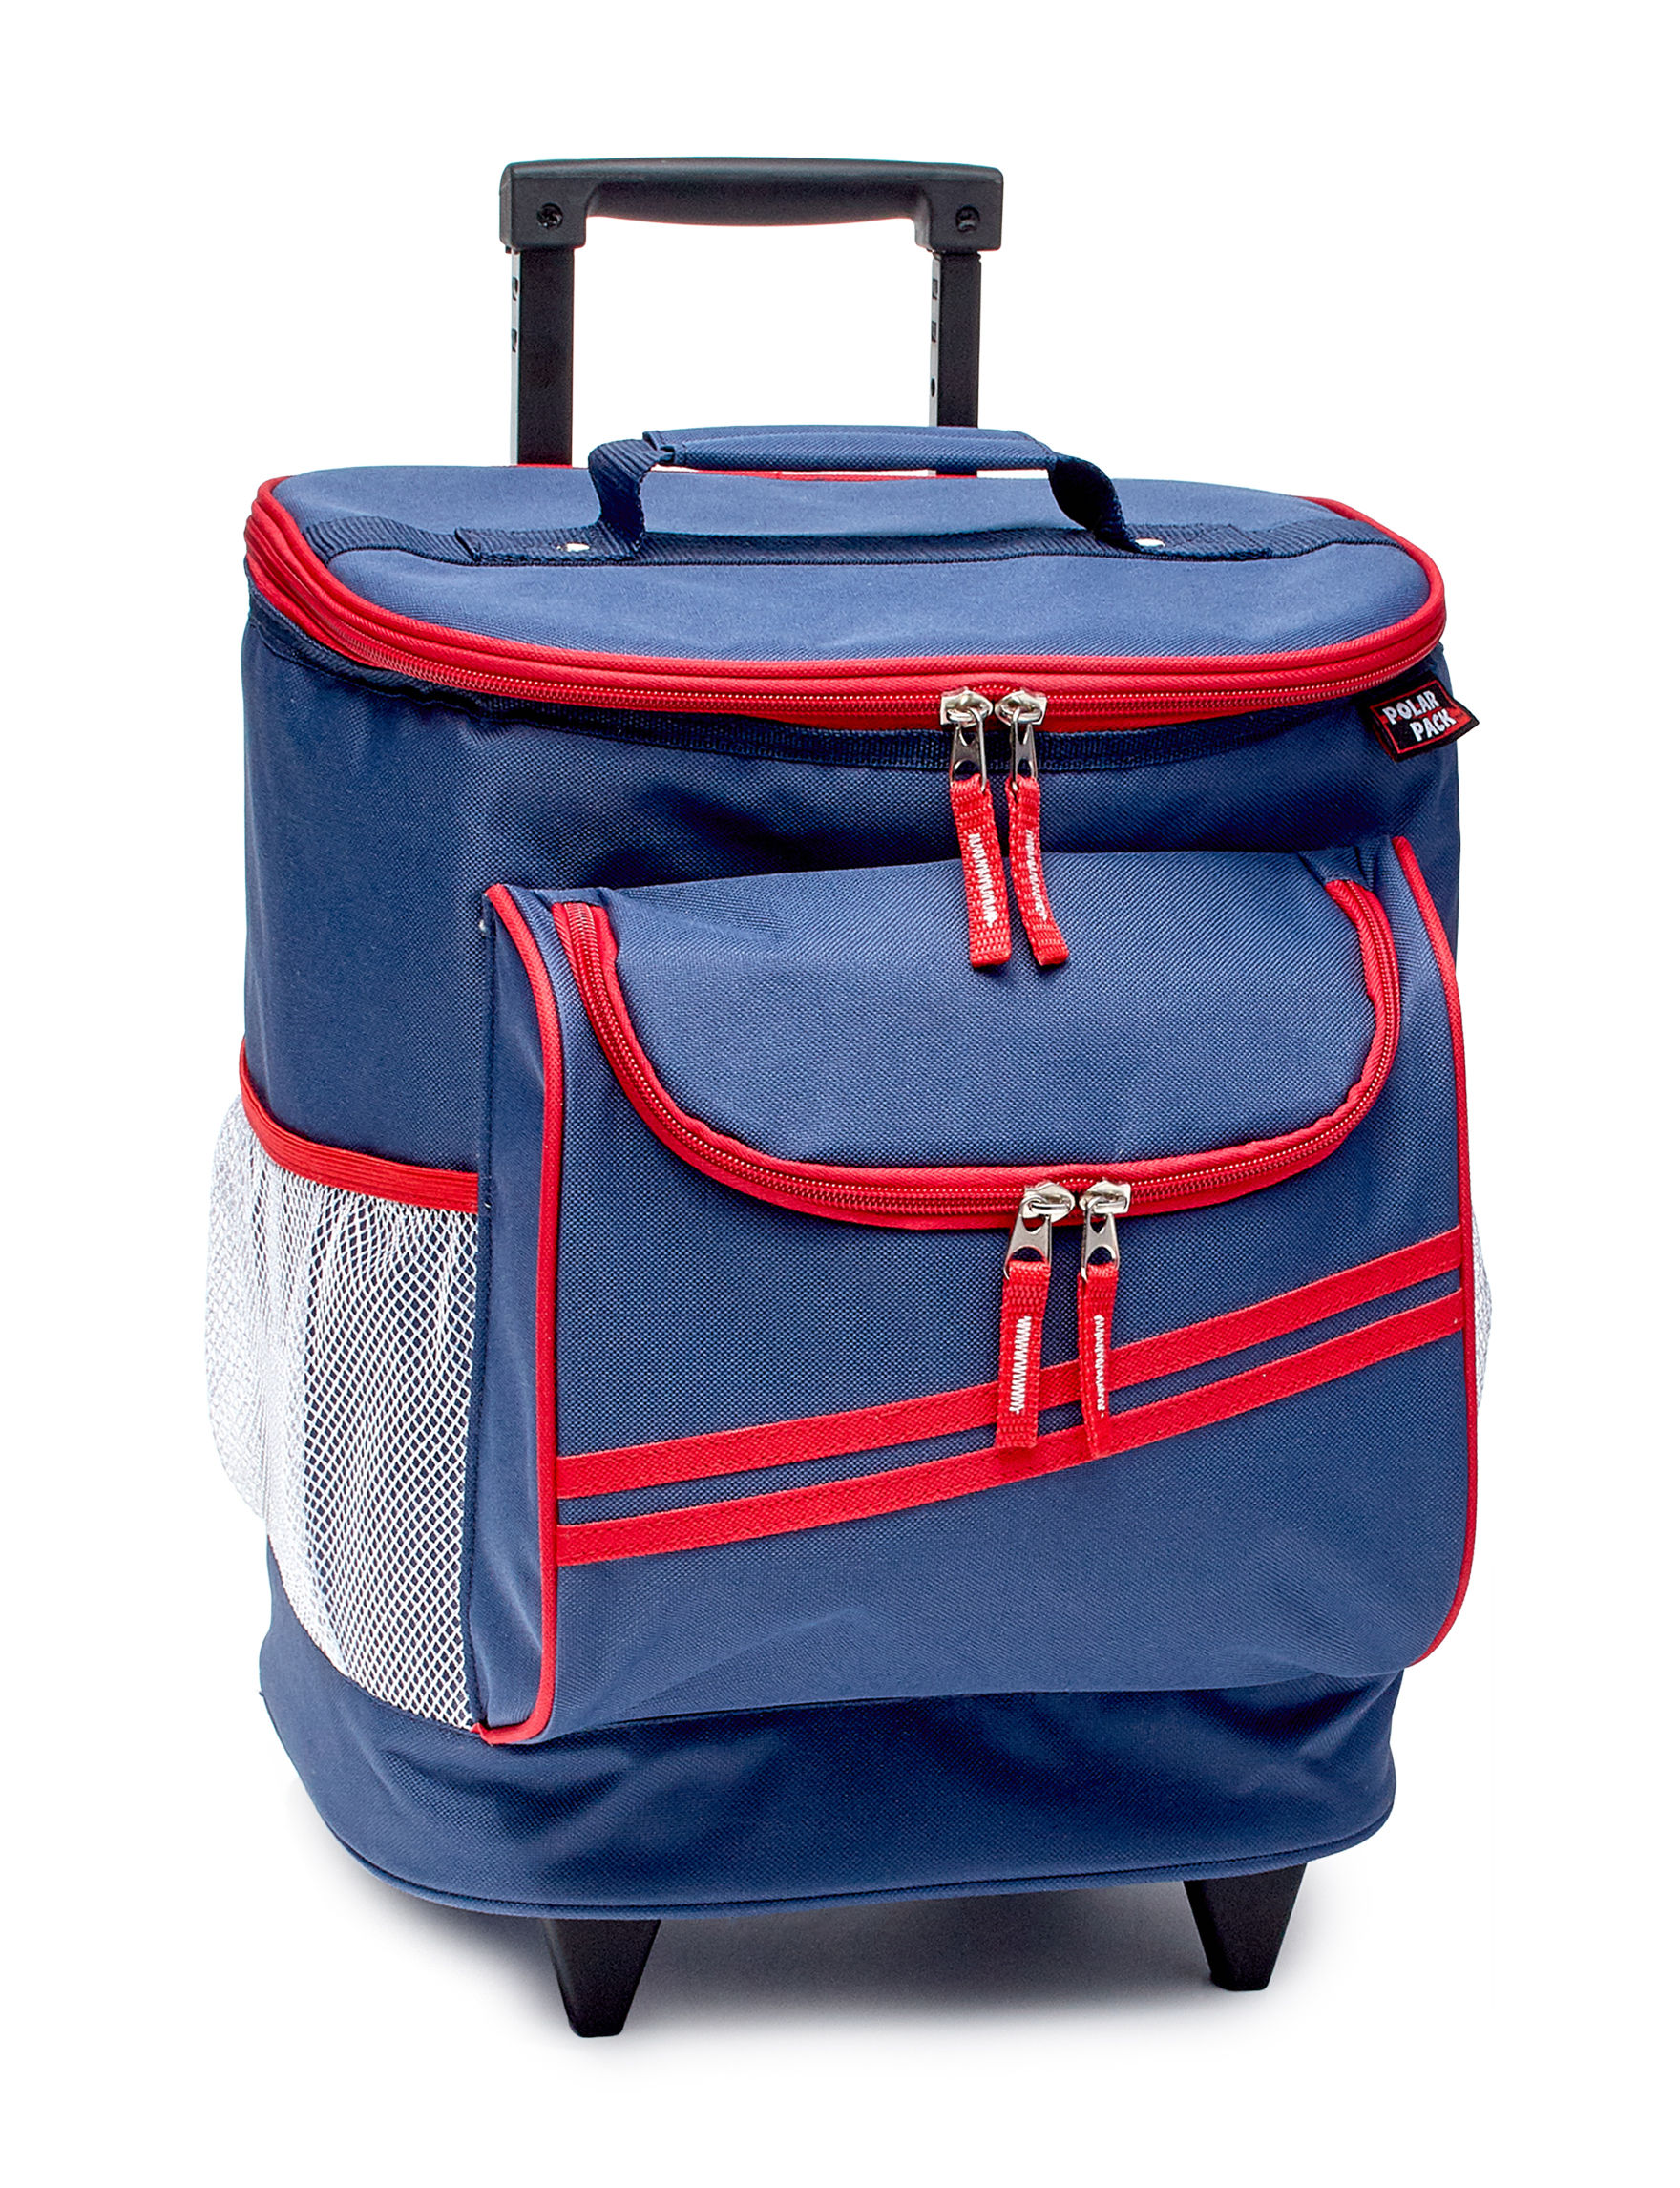 Polar Pack Blue / Red Coolers Camping & Outdoor Gear Outdoor Entertaining